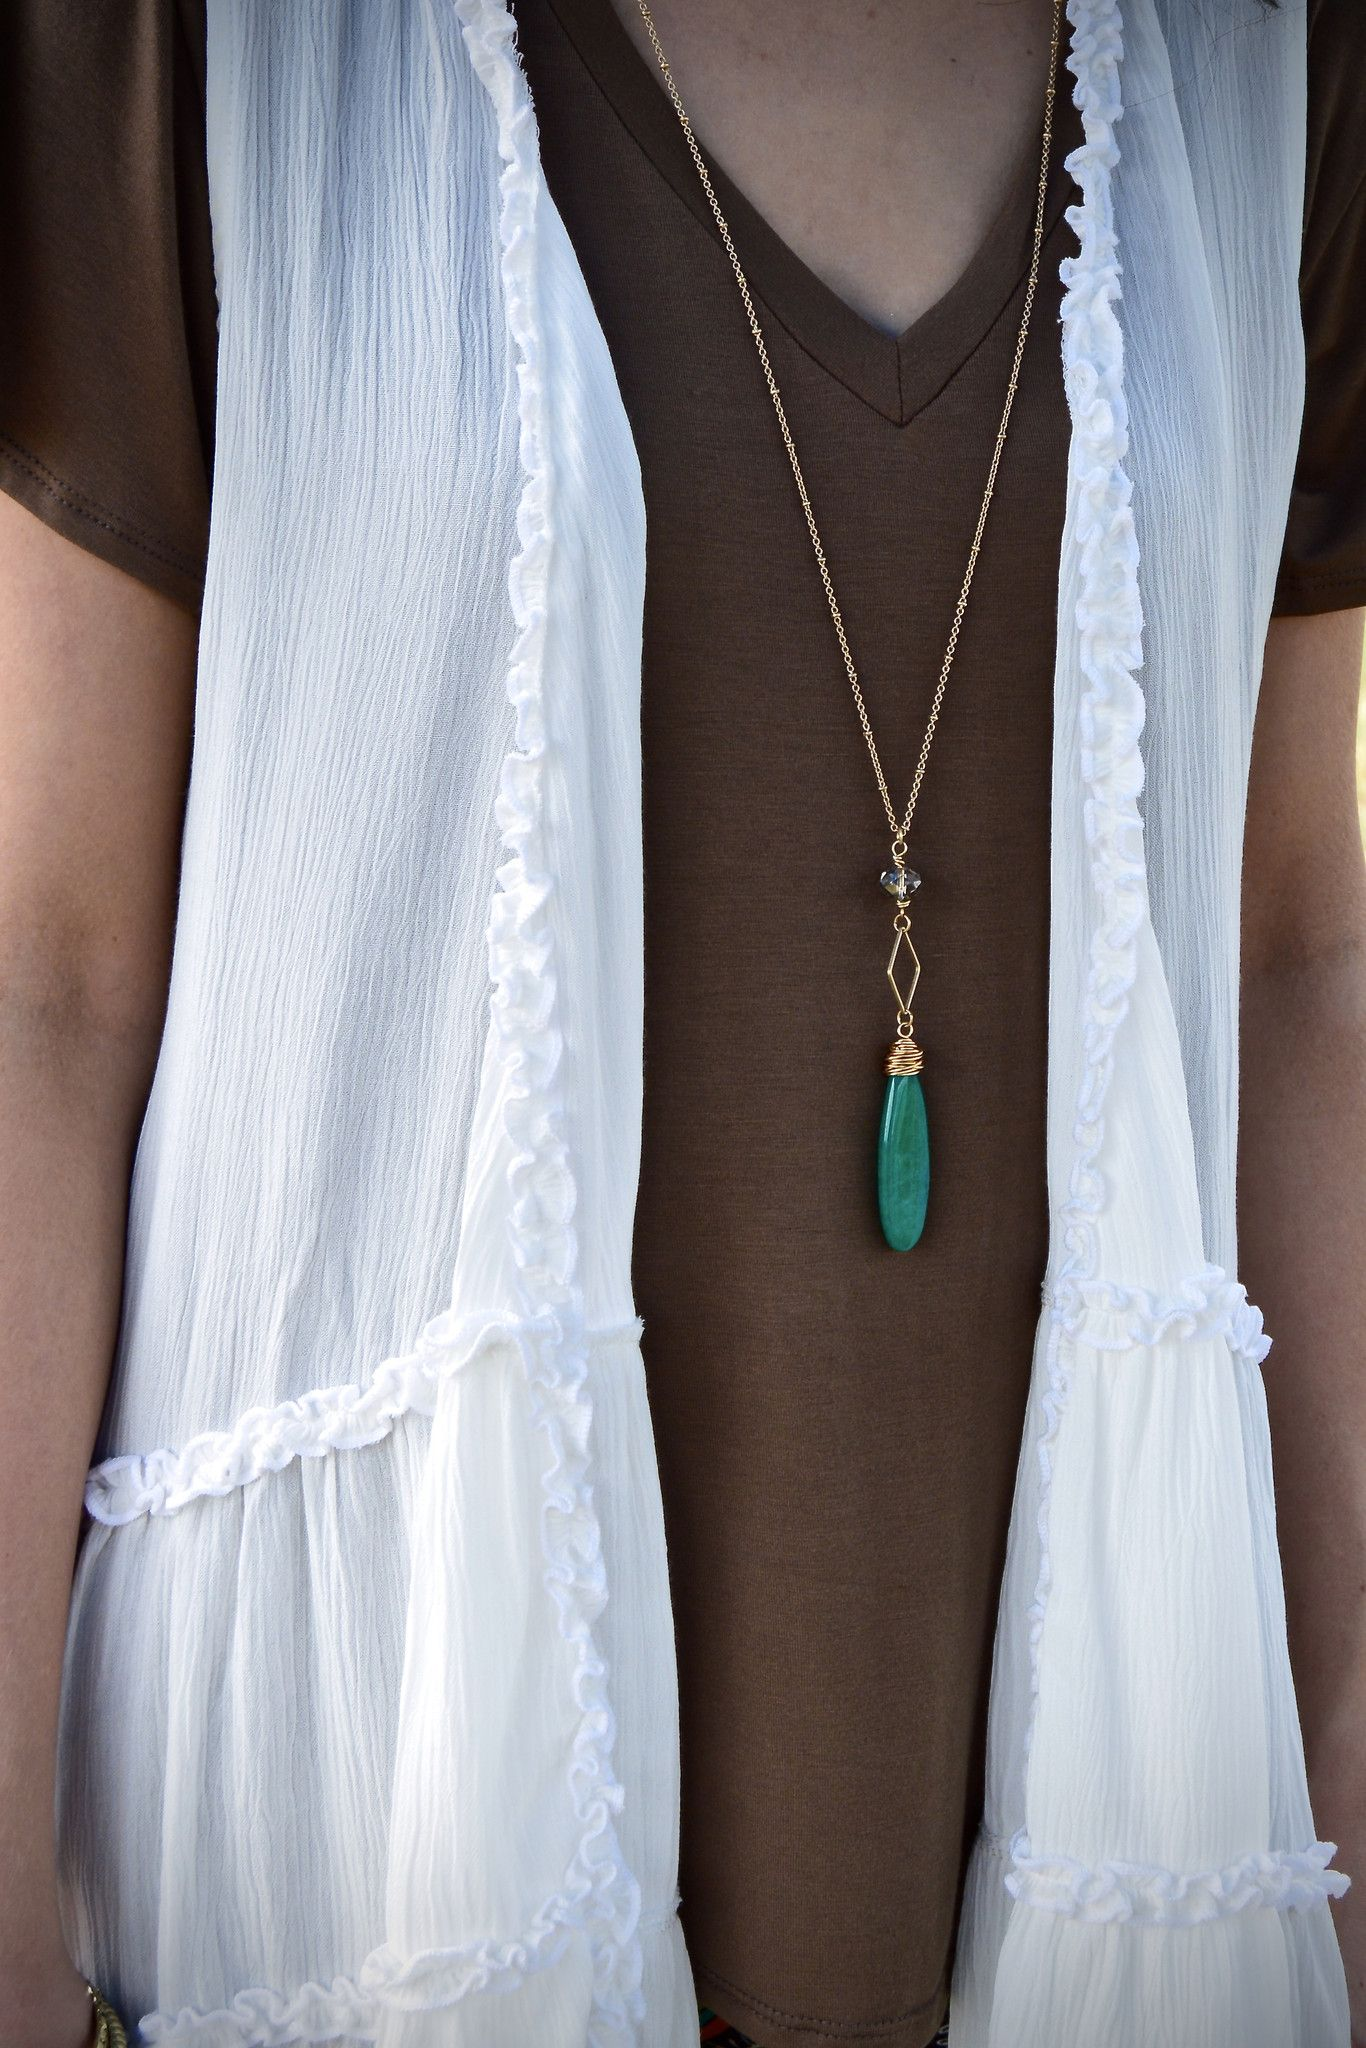 Teal Stone Pendant Necklace